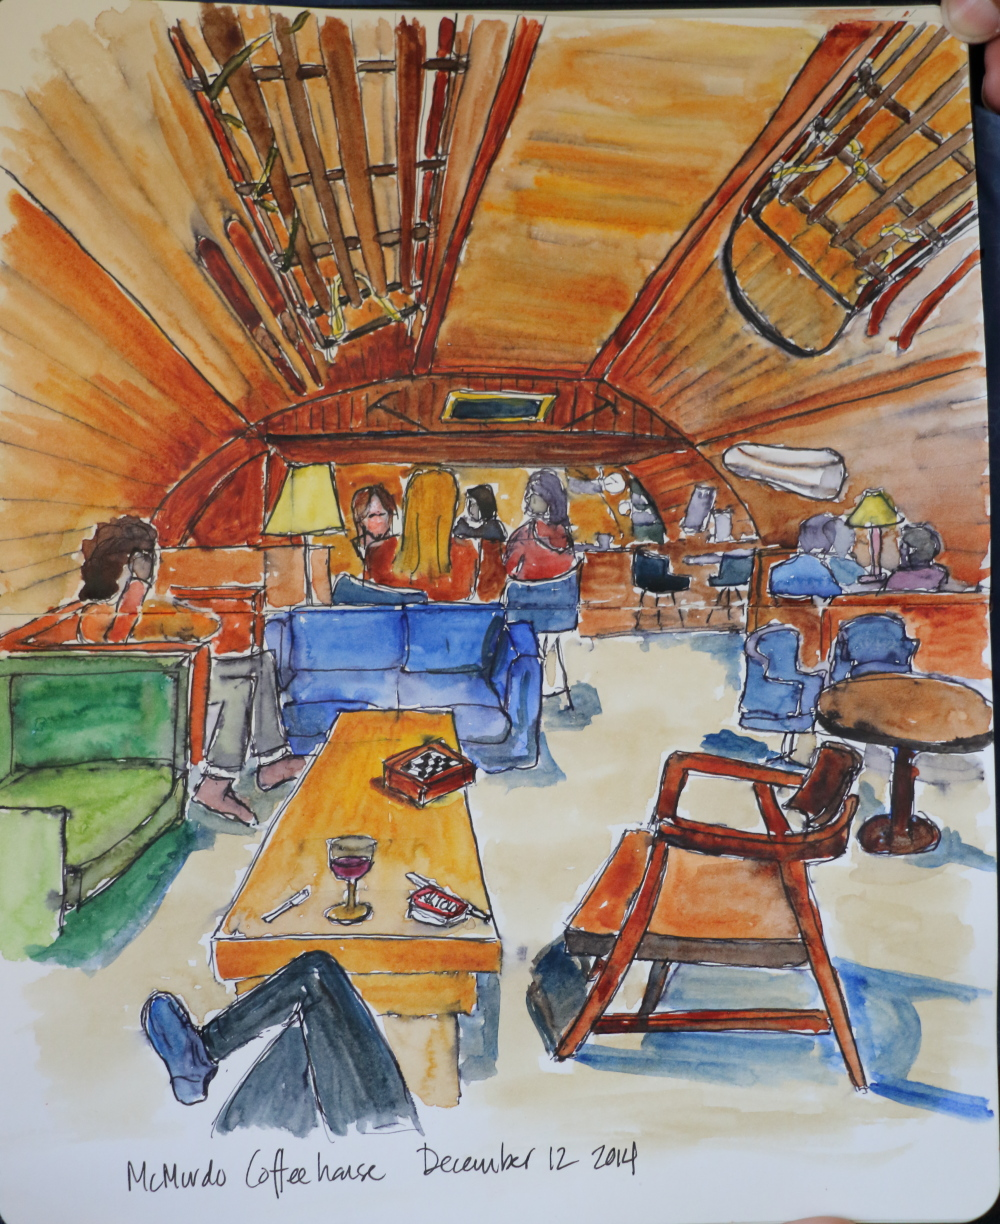 mcmurdo station coffeehouse, ink and watercolor on paper